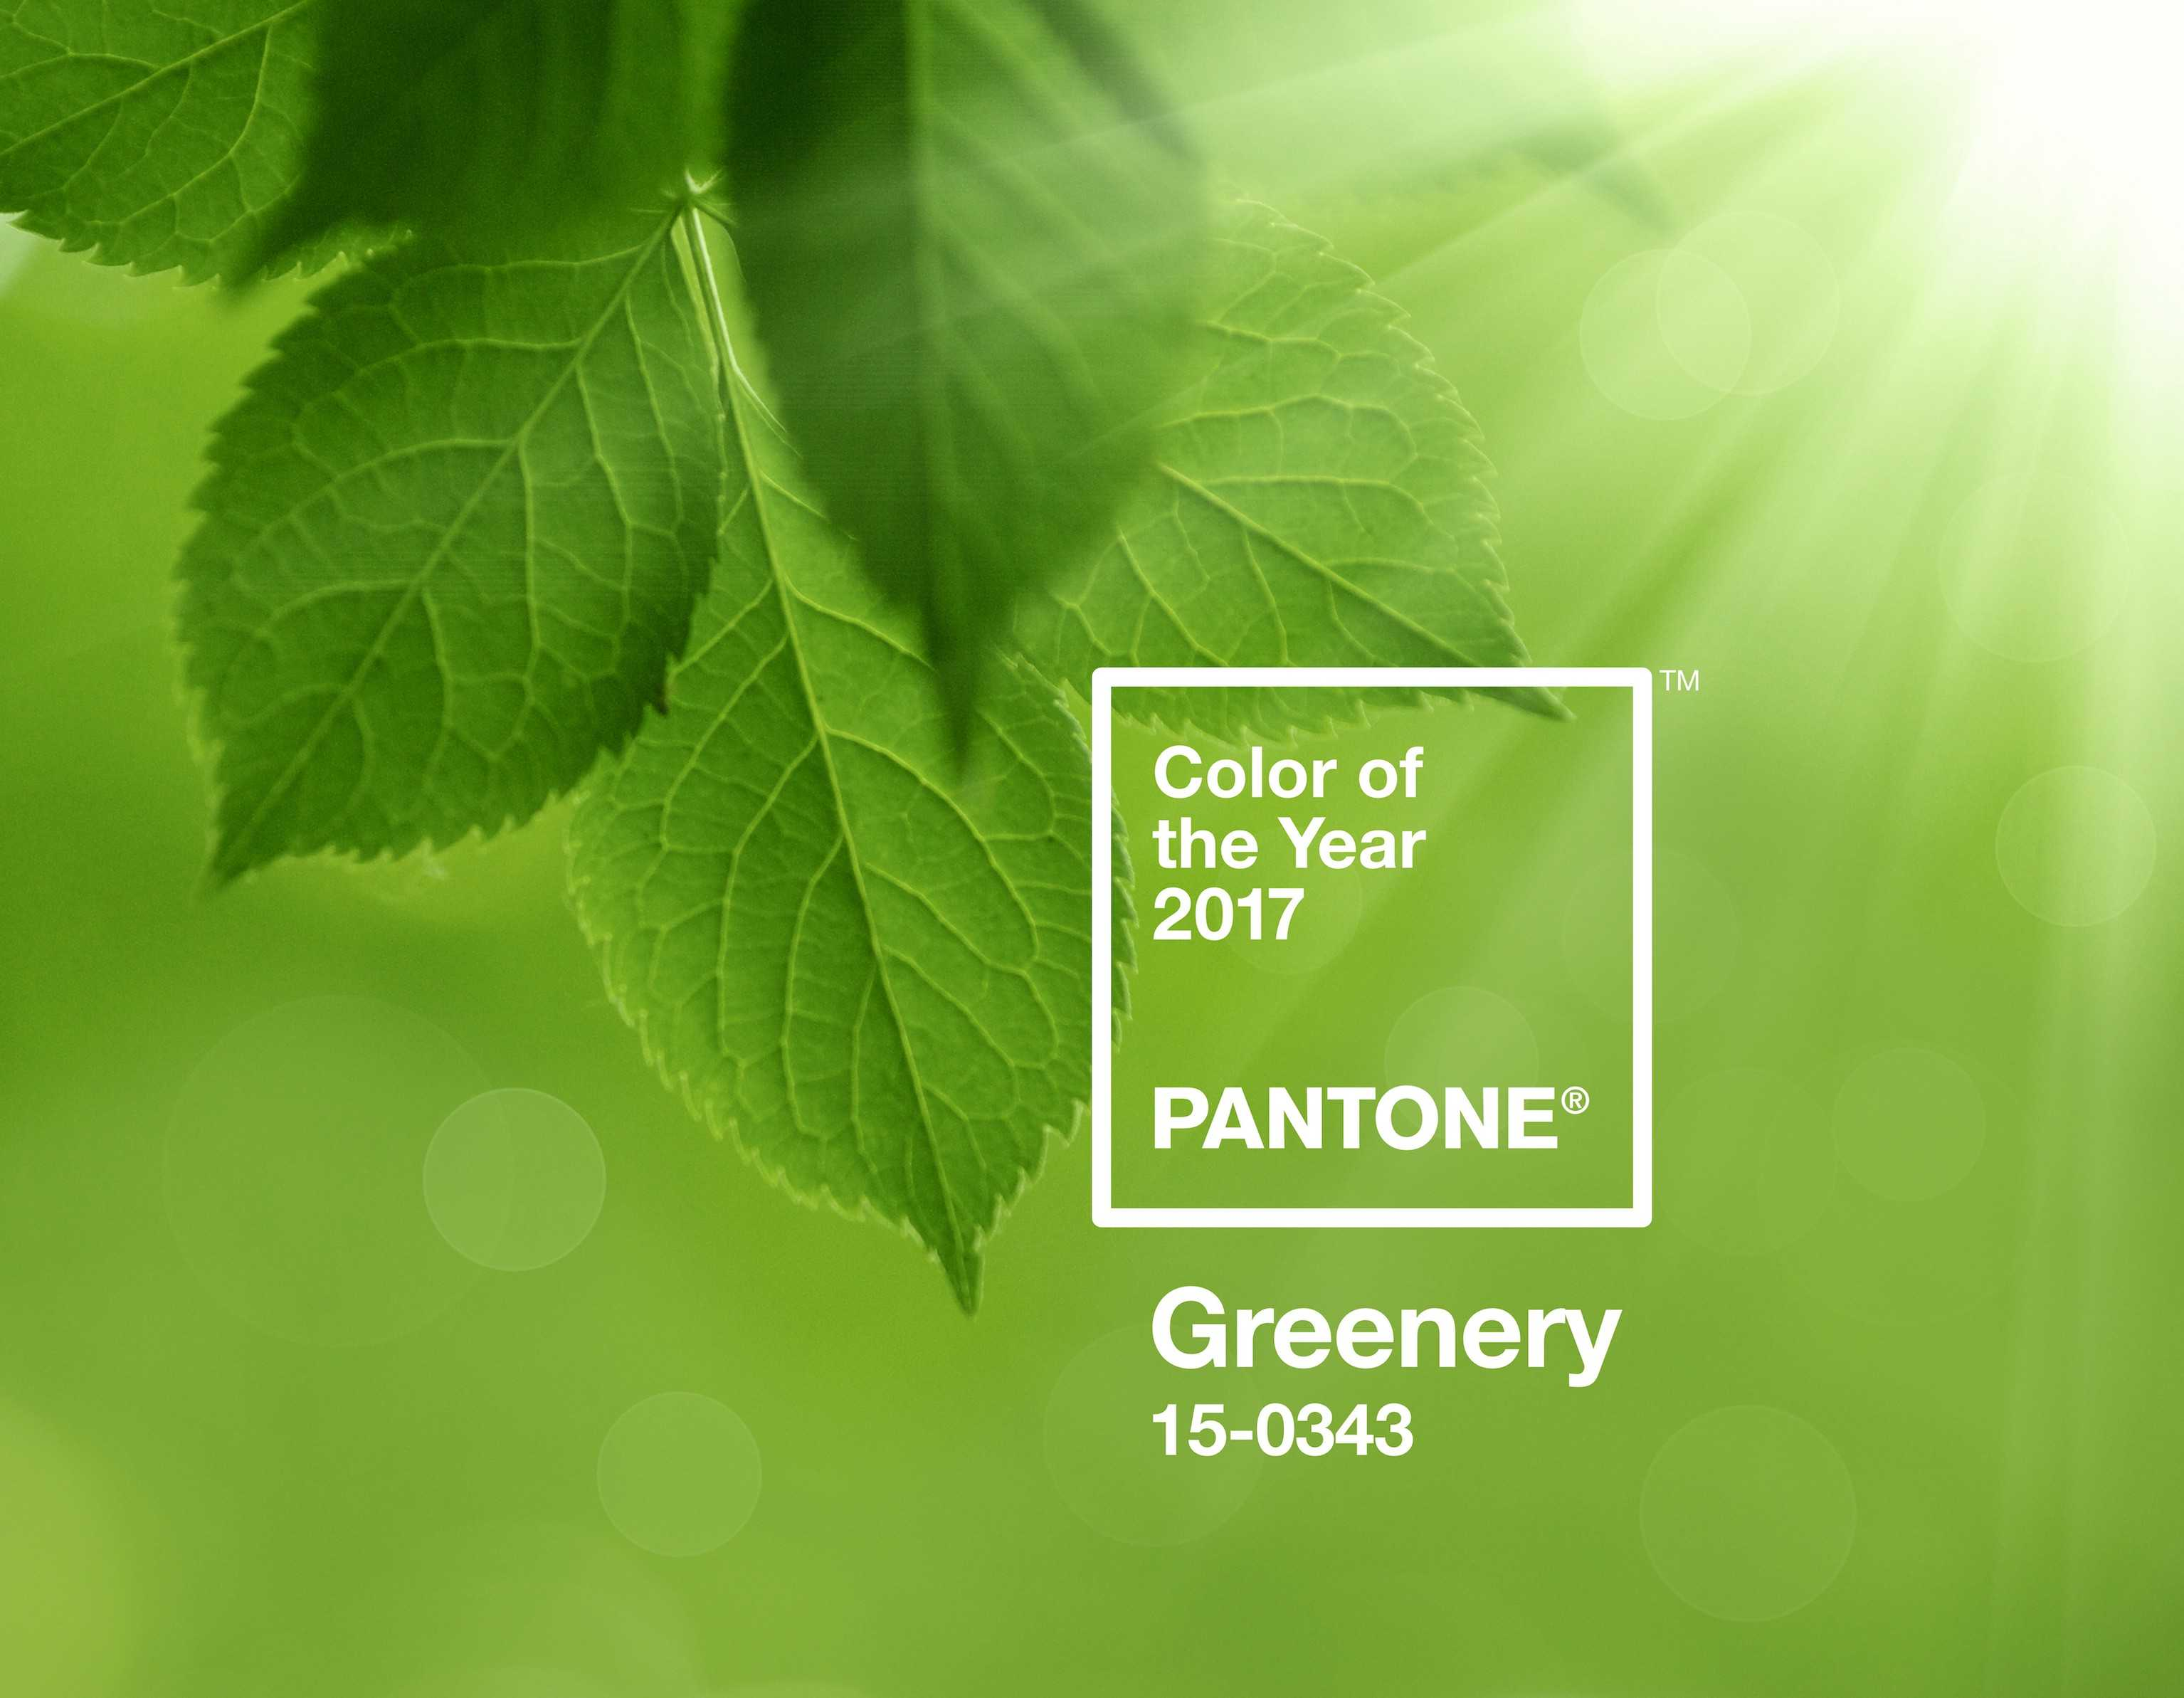 Greenery is 2017's chosen Color of the Year